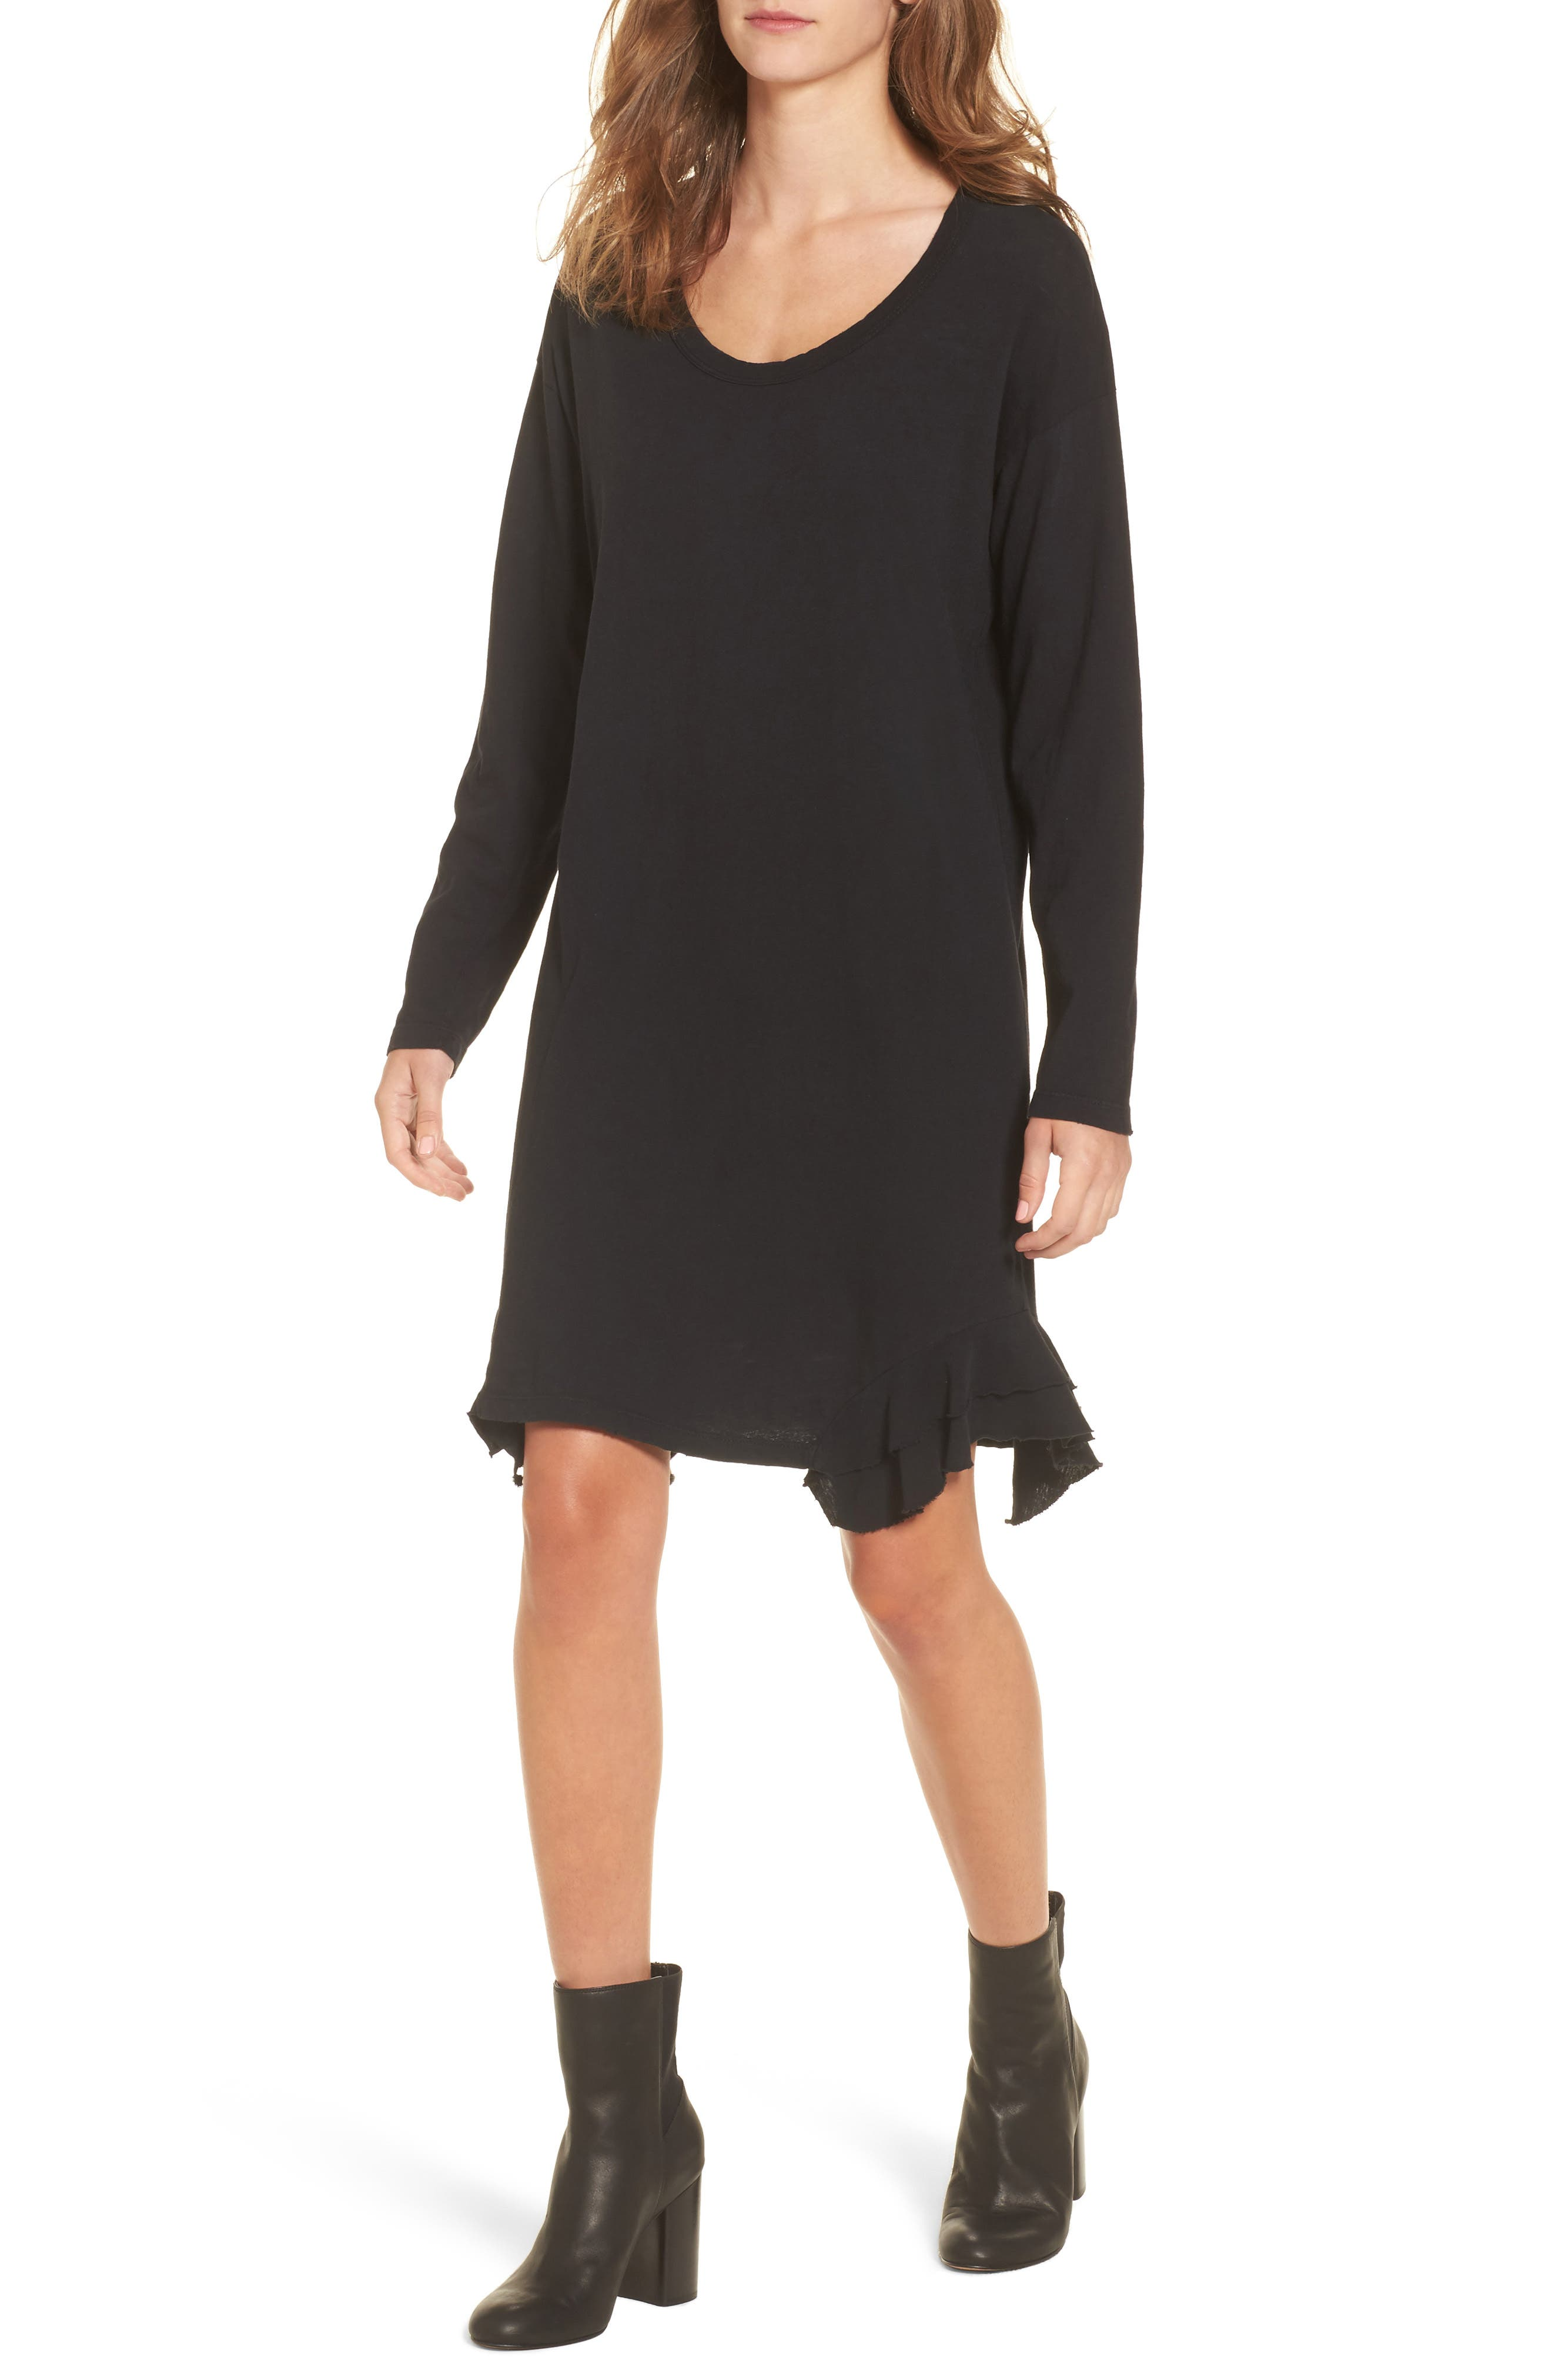 Main Image - Current/Elliott The Tier Long Sleeve Dress